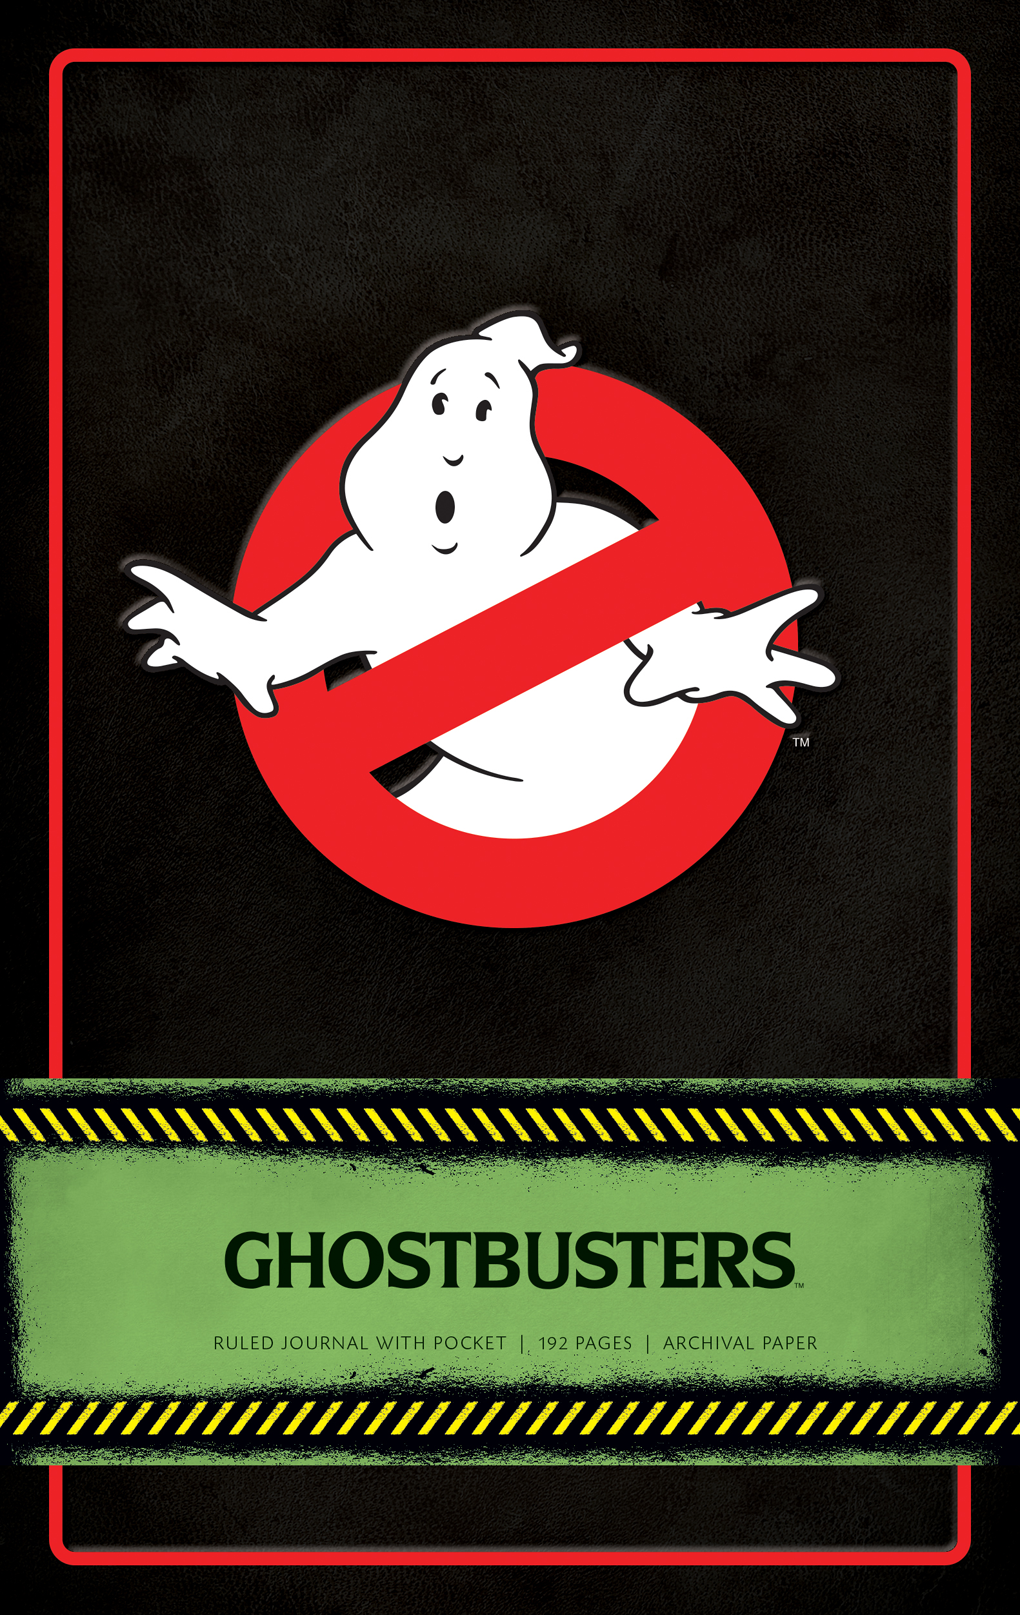 Ghostbusters: Ruled Journal With Pocket